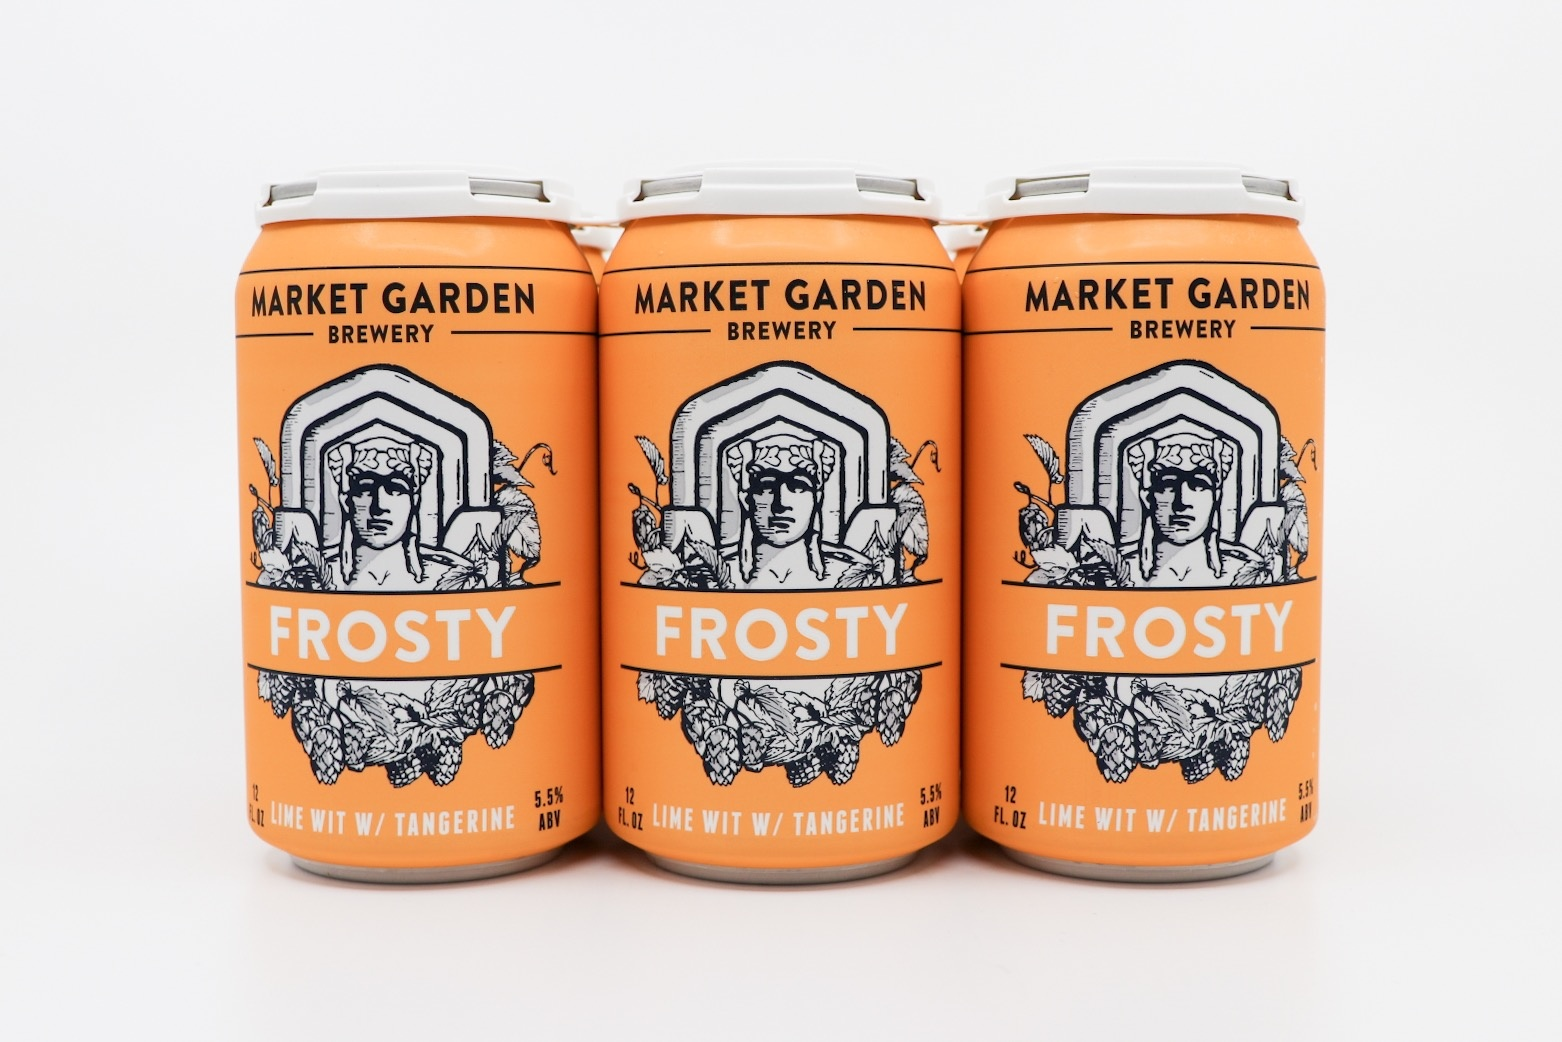 6 Pack: Frosty Lime Wit